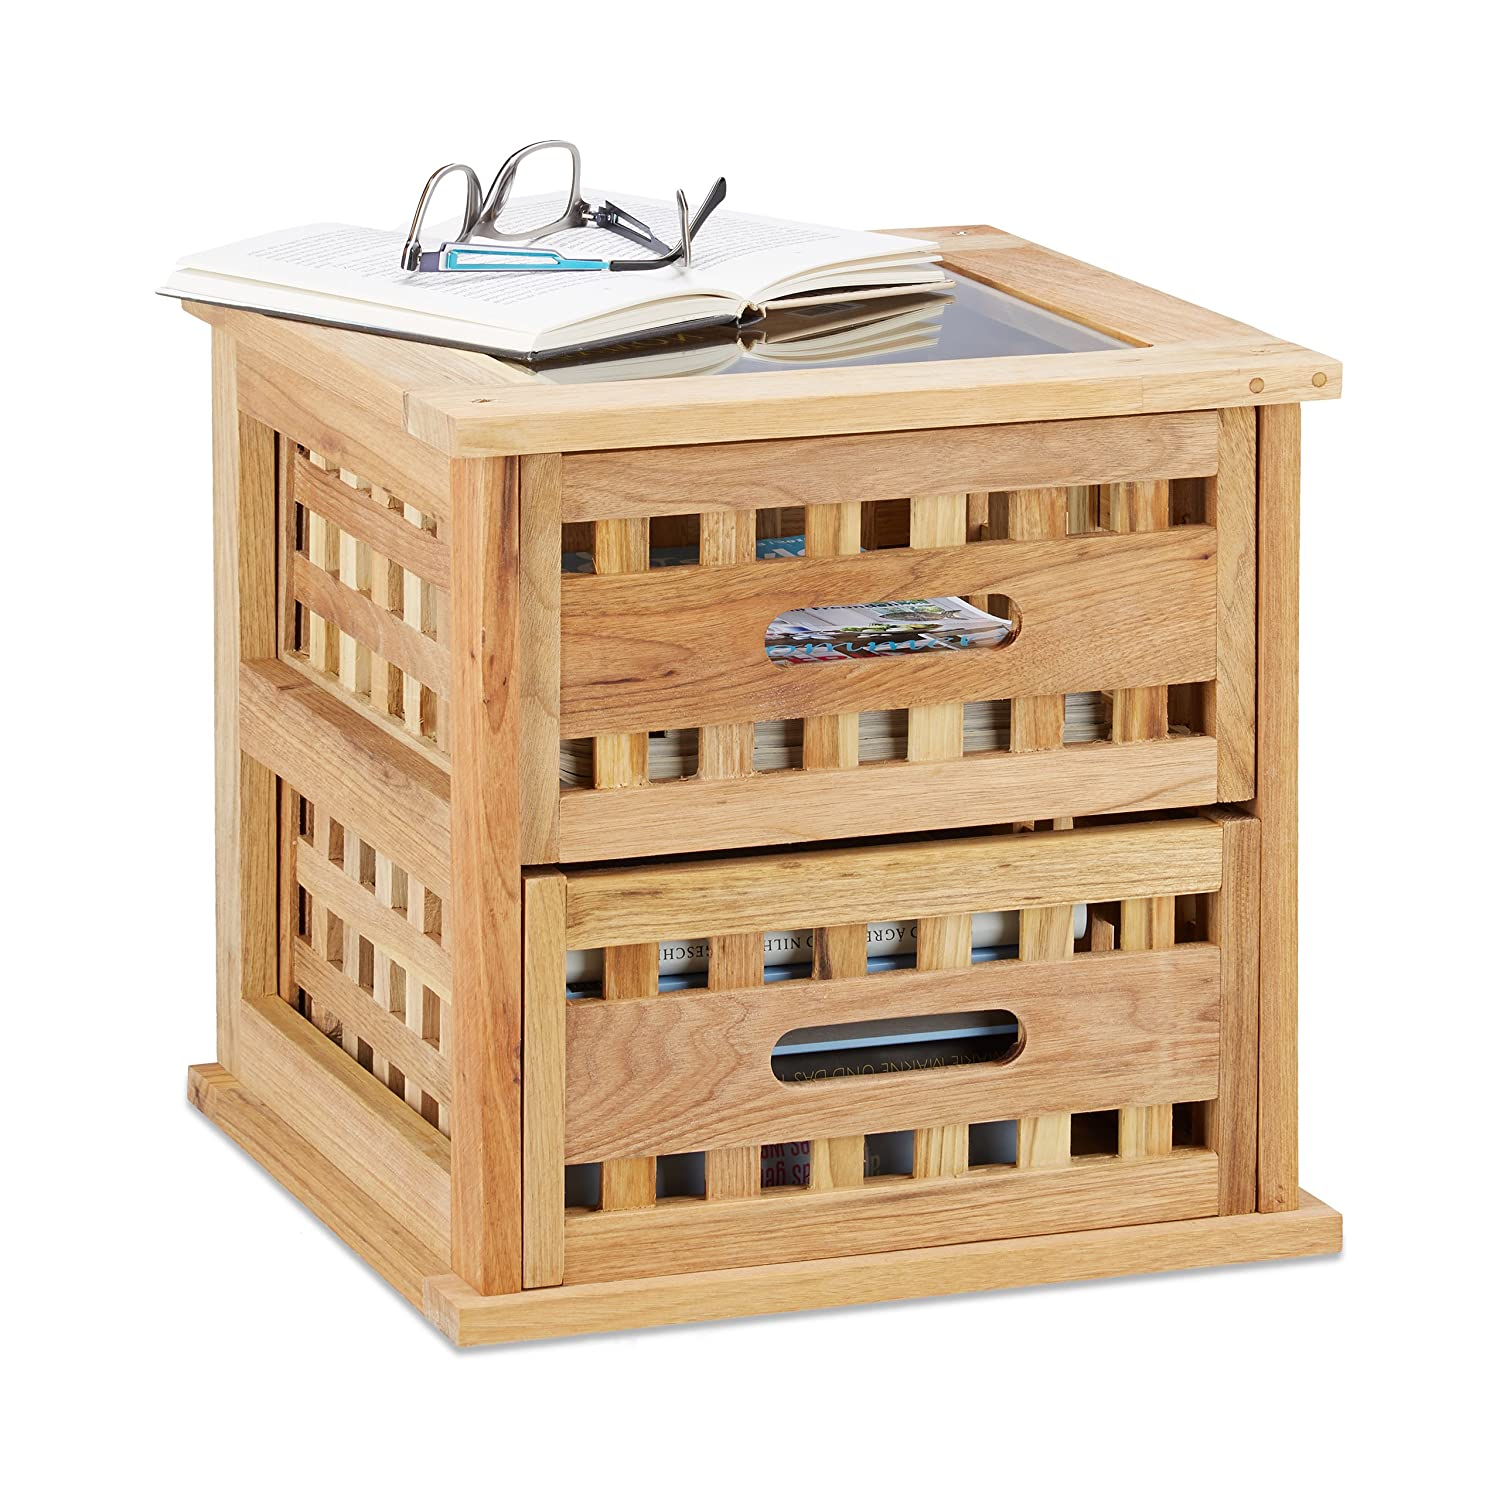 Relaxdays Walnut Side Table, Square Nightstand Natural Wood with 2 Drawers, HWD: 34 x 34 x 34 cm, Natural 10020649